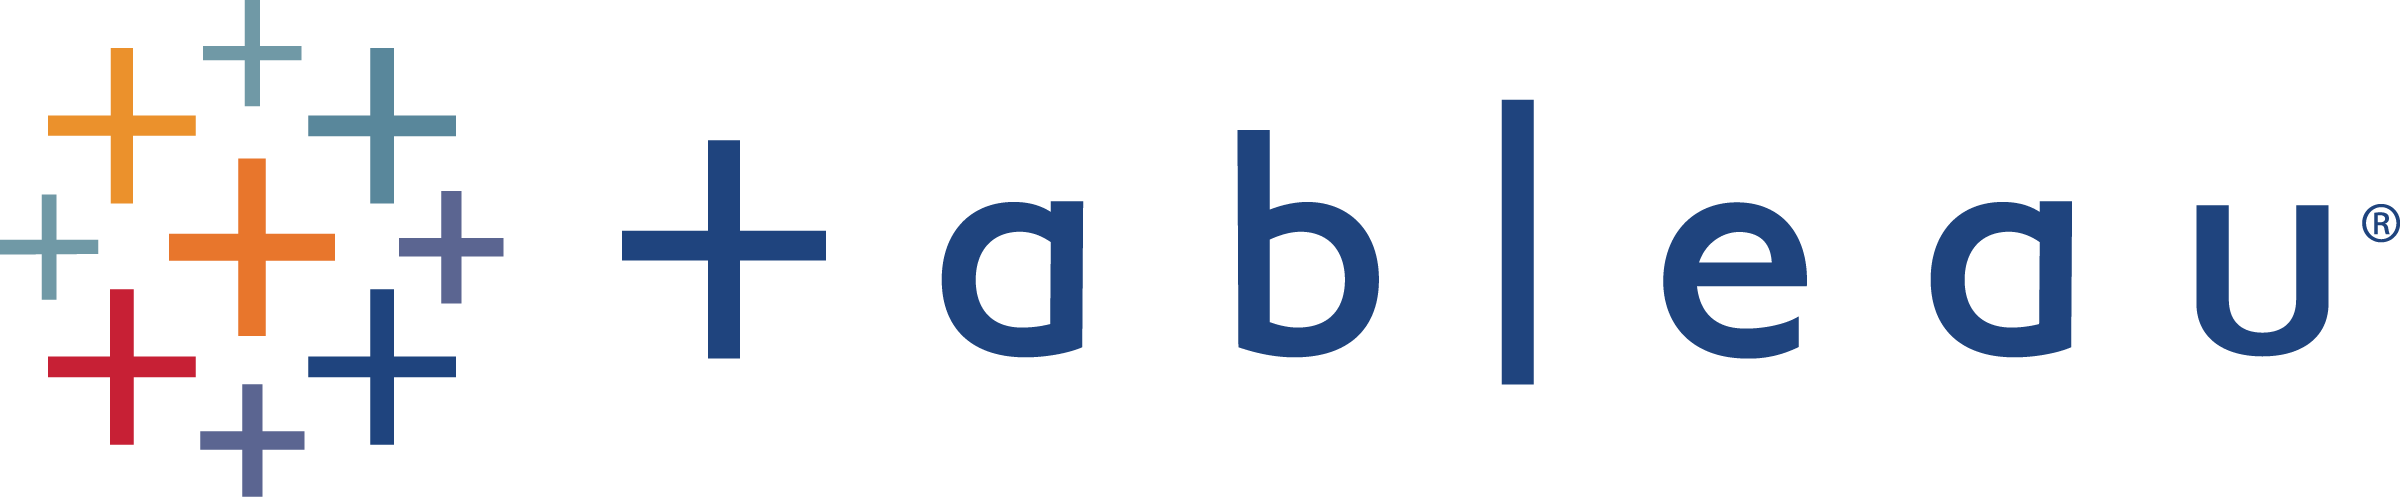 File:Tableau Logo.png - Wikimedia Commons